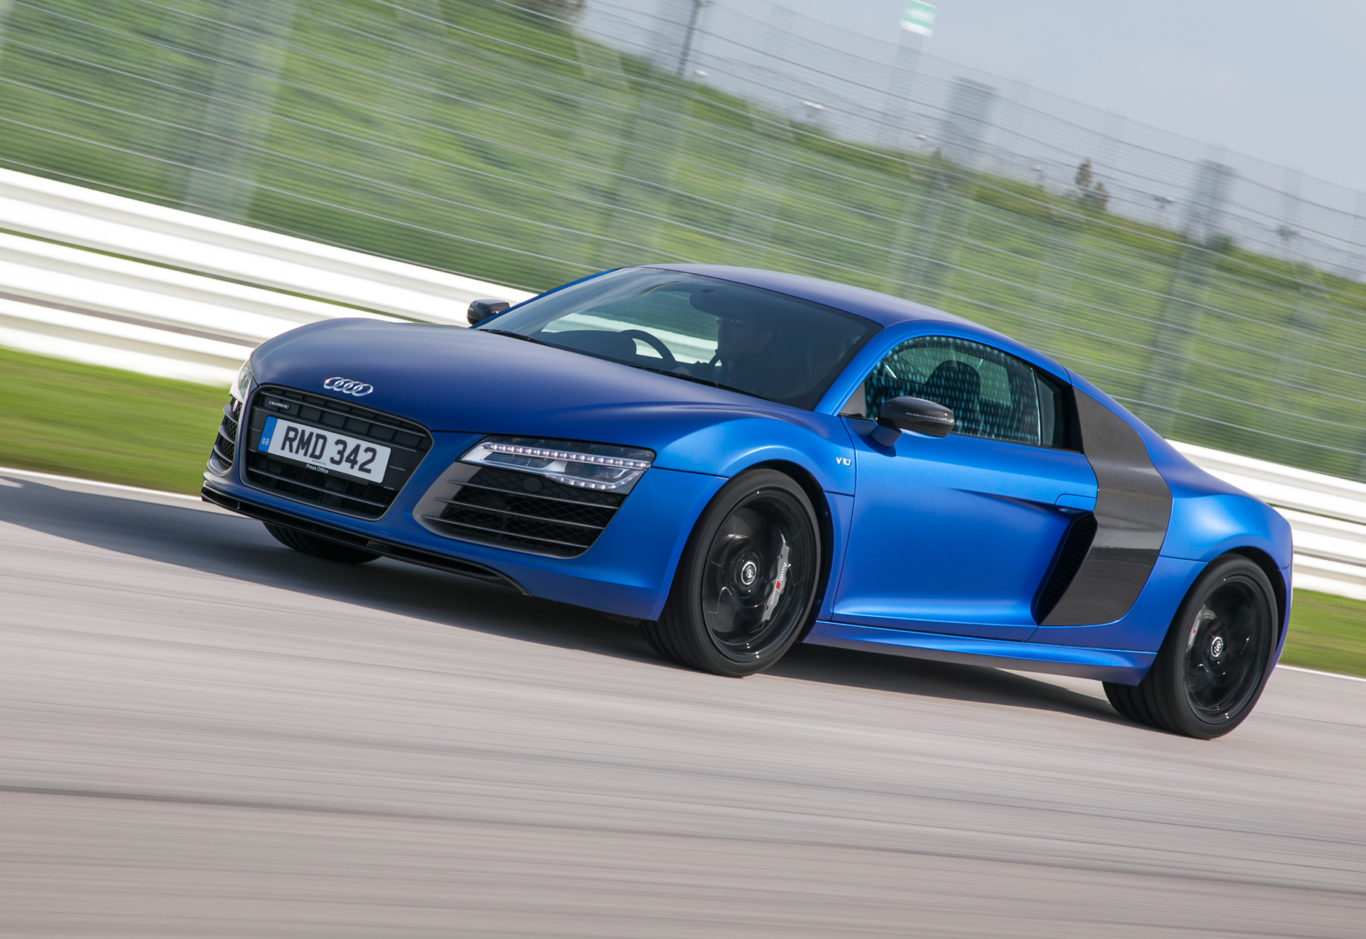 The first-generation R8 was one of the first 'everyday' supercars